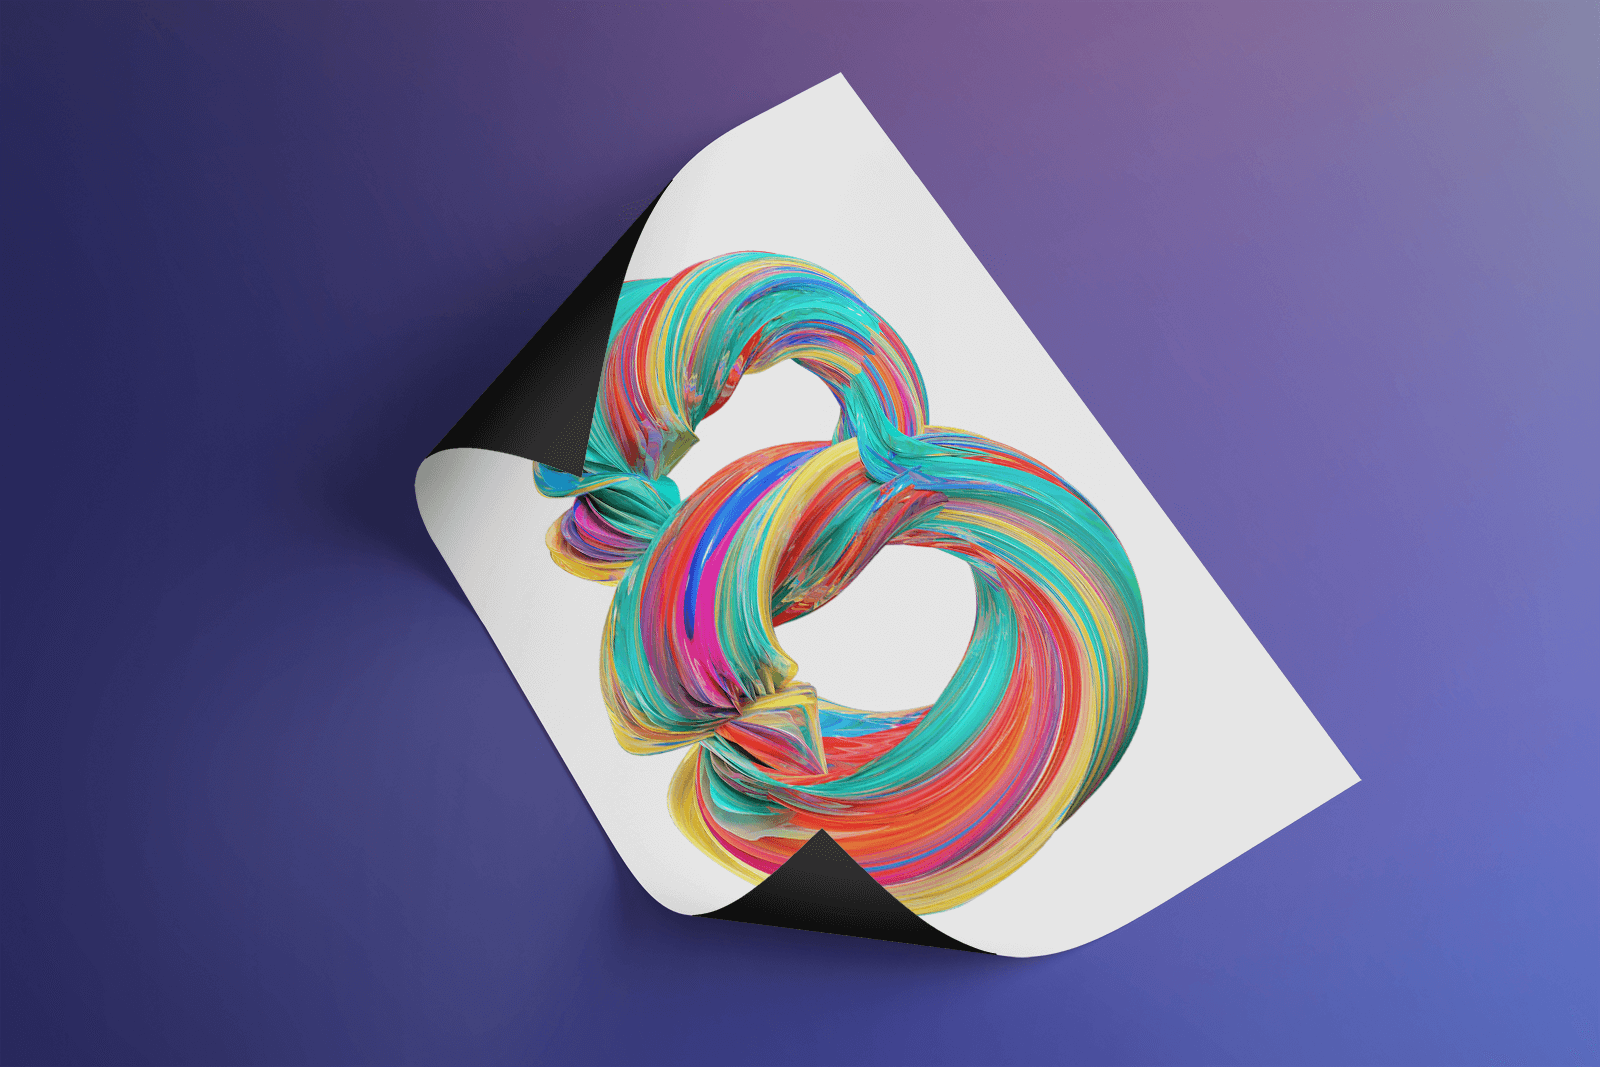 Free Curled Poster Mockup